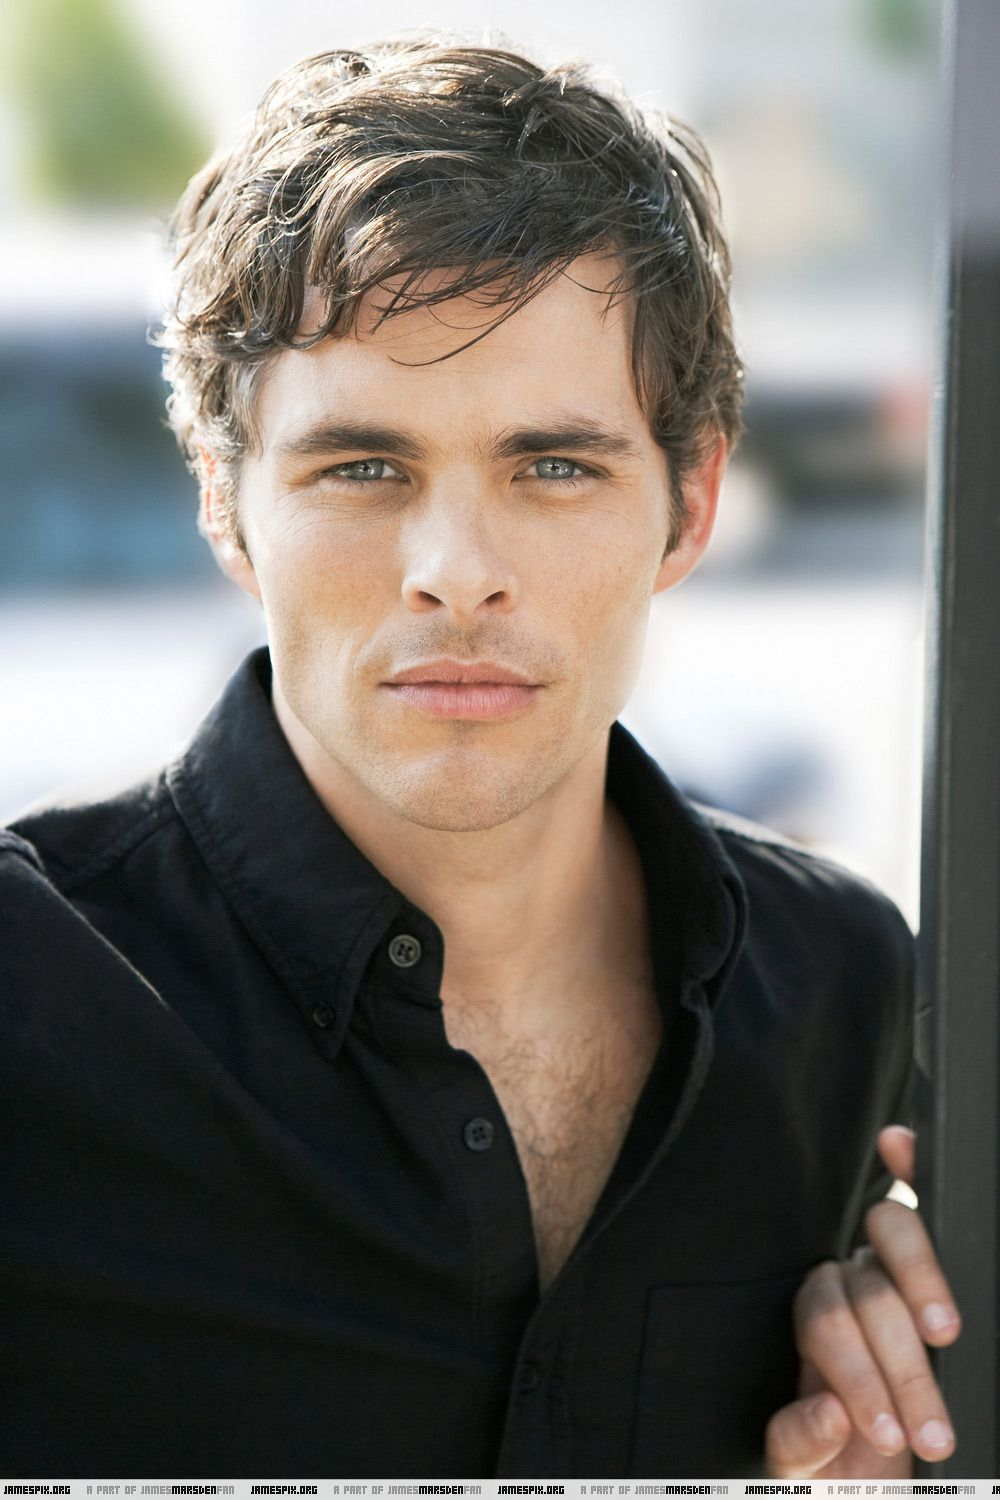 020 Jpg Click Image To Close This Window Hot Actors American Actors Celebrities Male